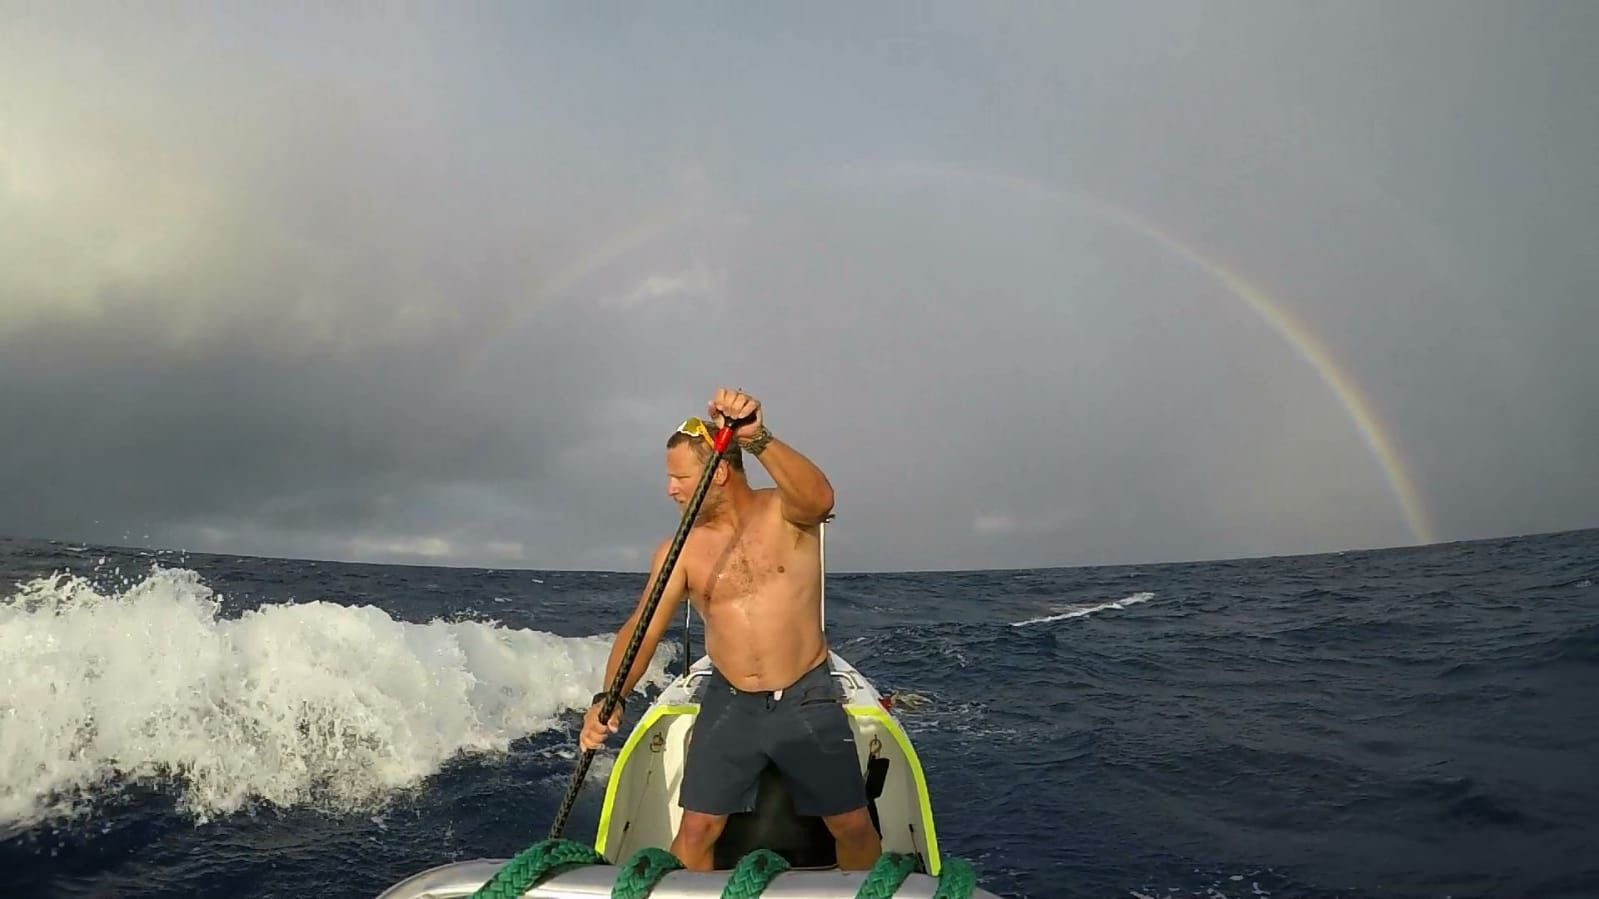 De la Rosa spent his 50th birthday on the paddleboard.